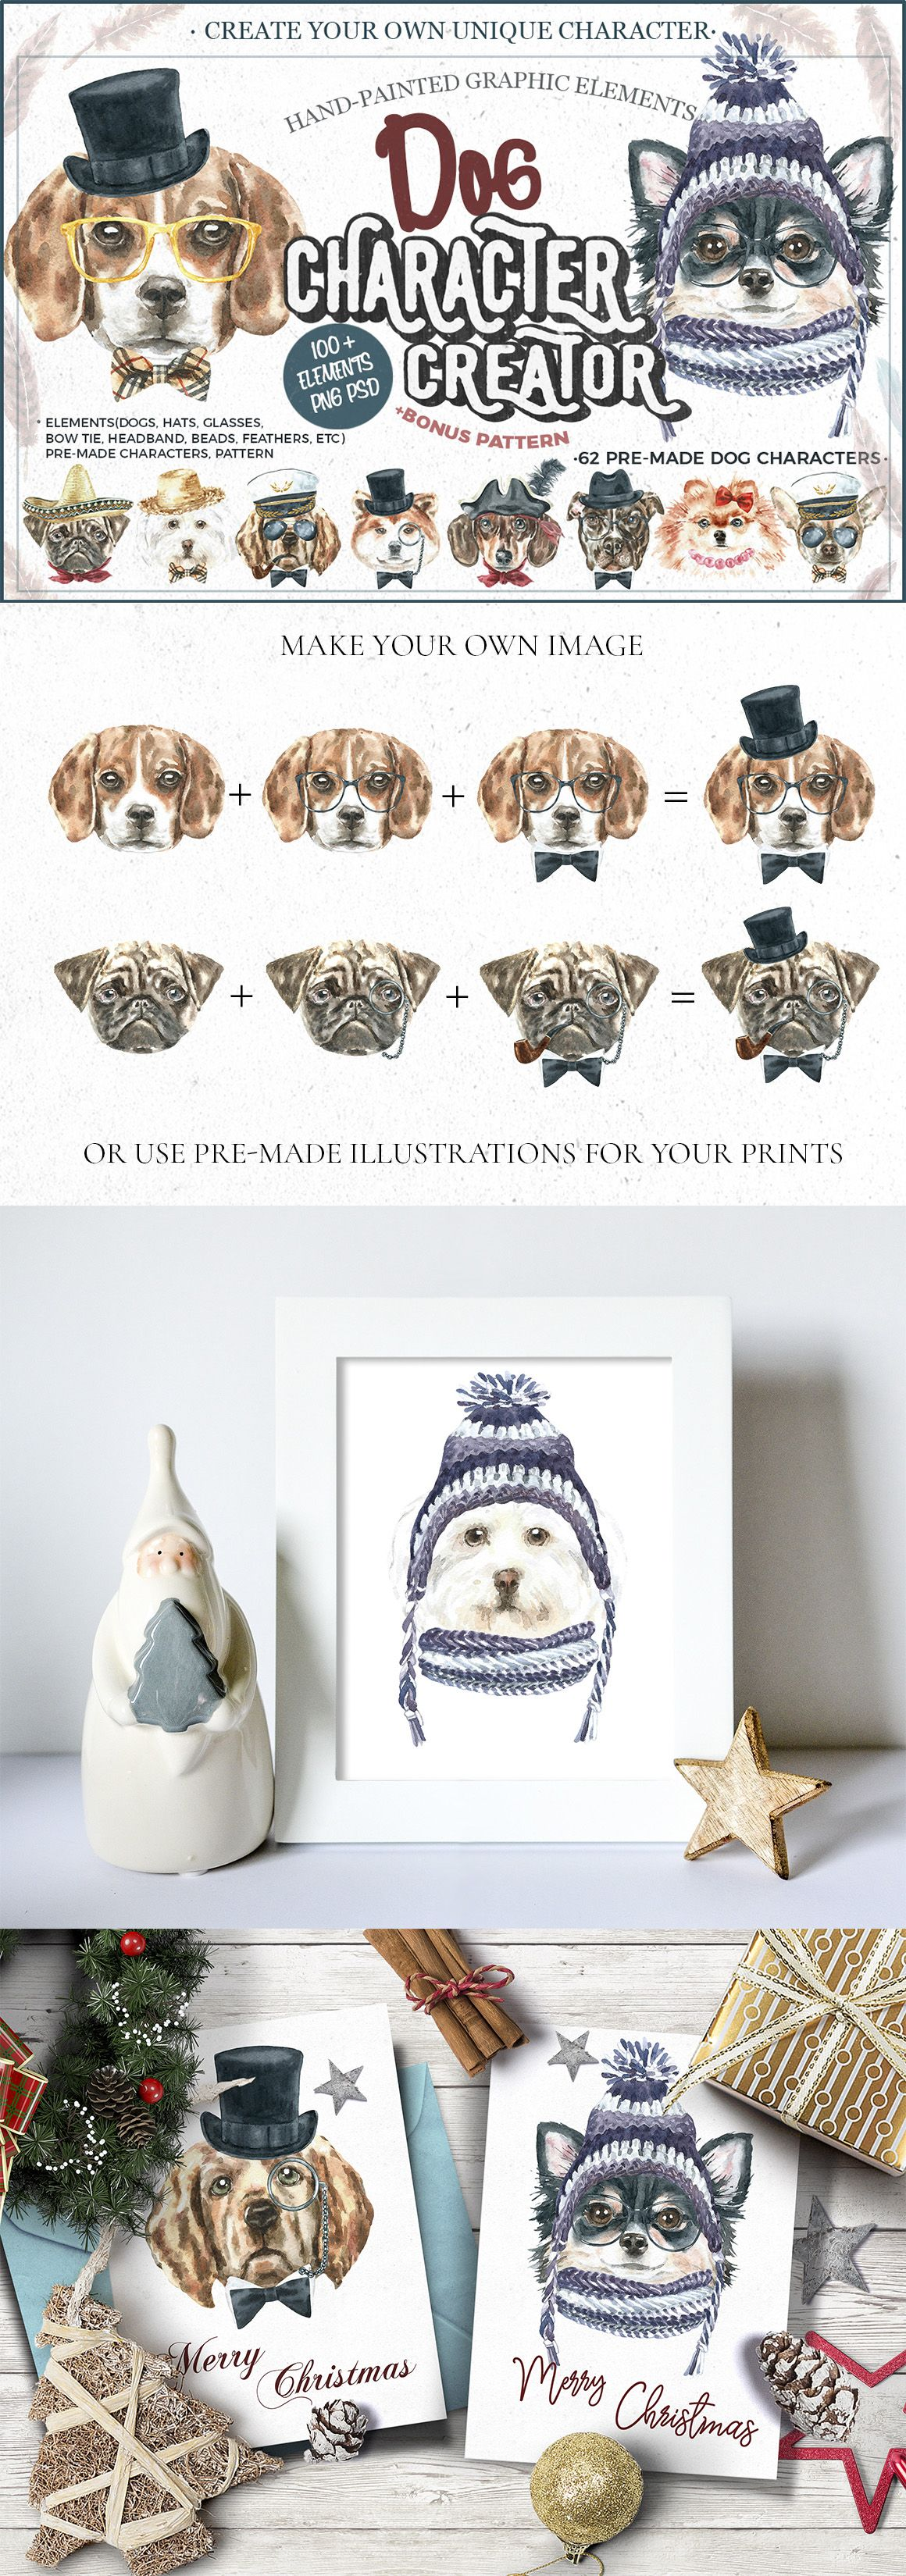 Dog Portraits For Christmas Cards And New Year Posters Create